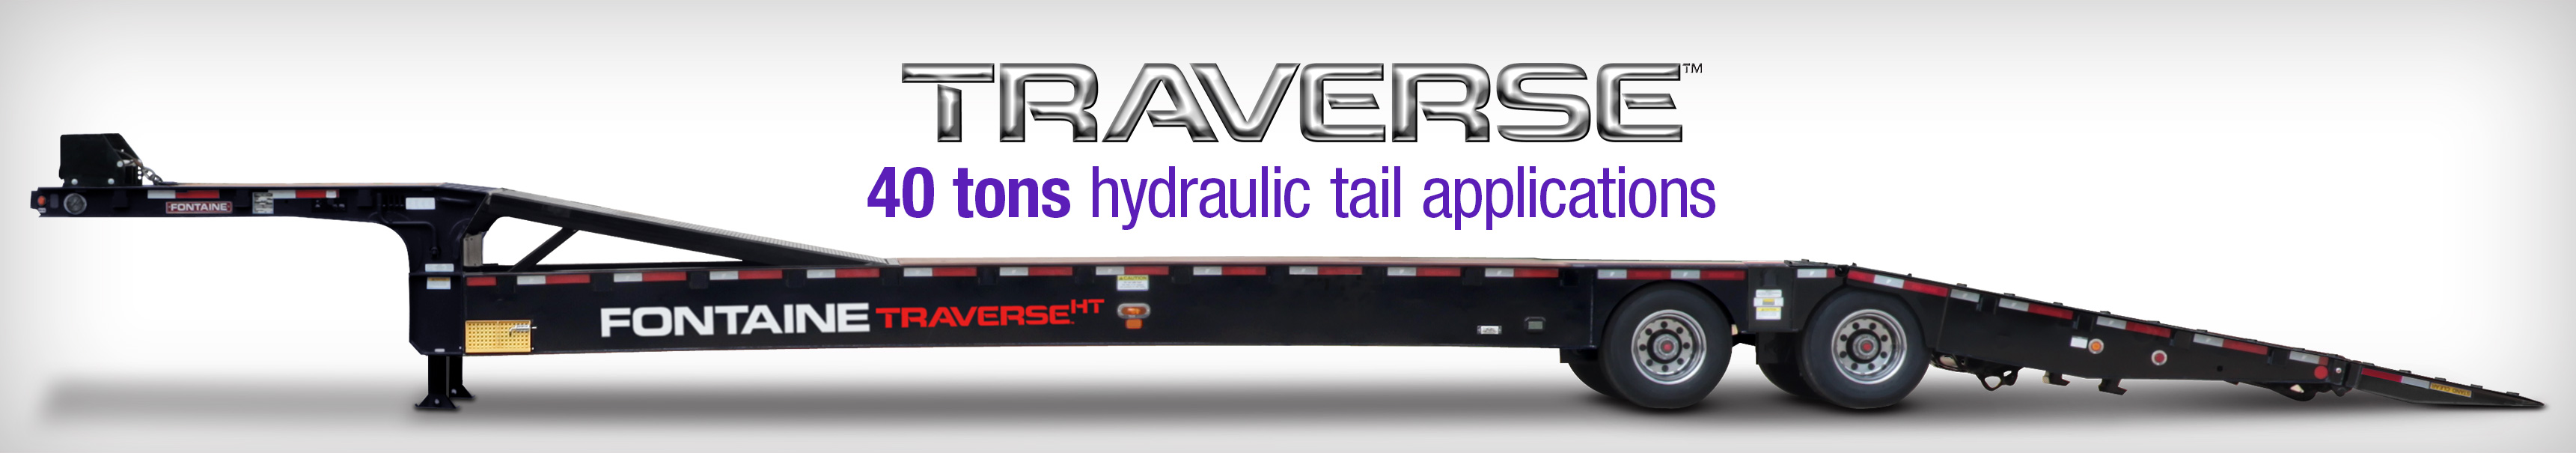 Fontaine Heavy Haul Hydraulic Tail Traverse Trailers